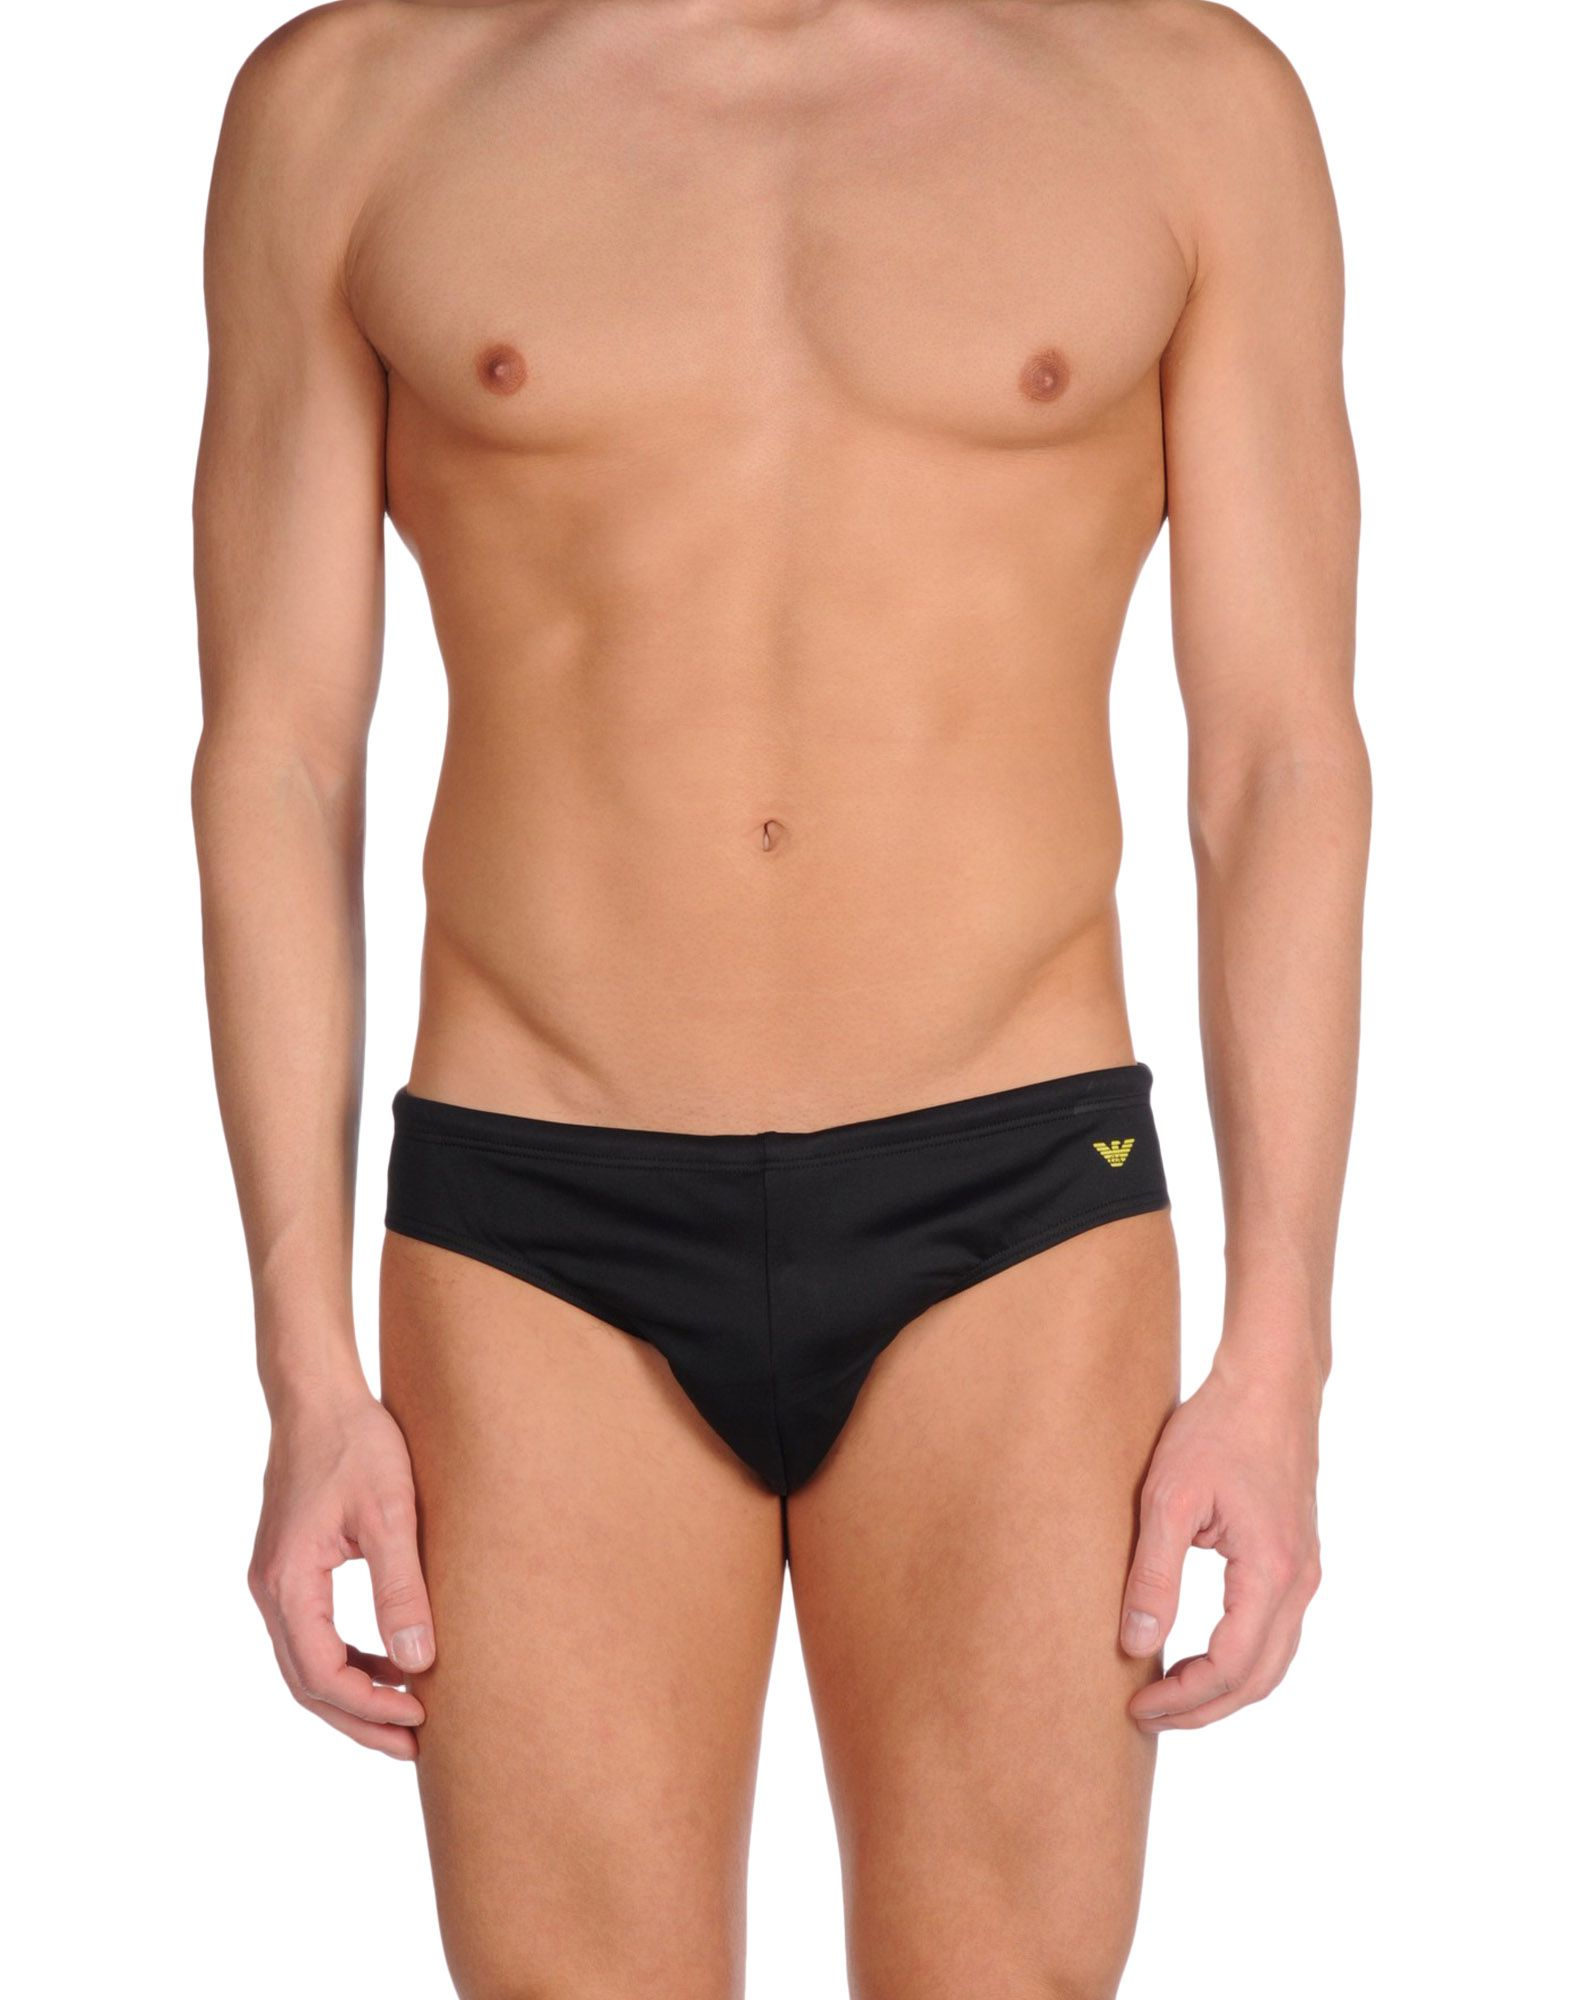 Emporio armani Bikini Bottoms in Black for Men